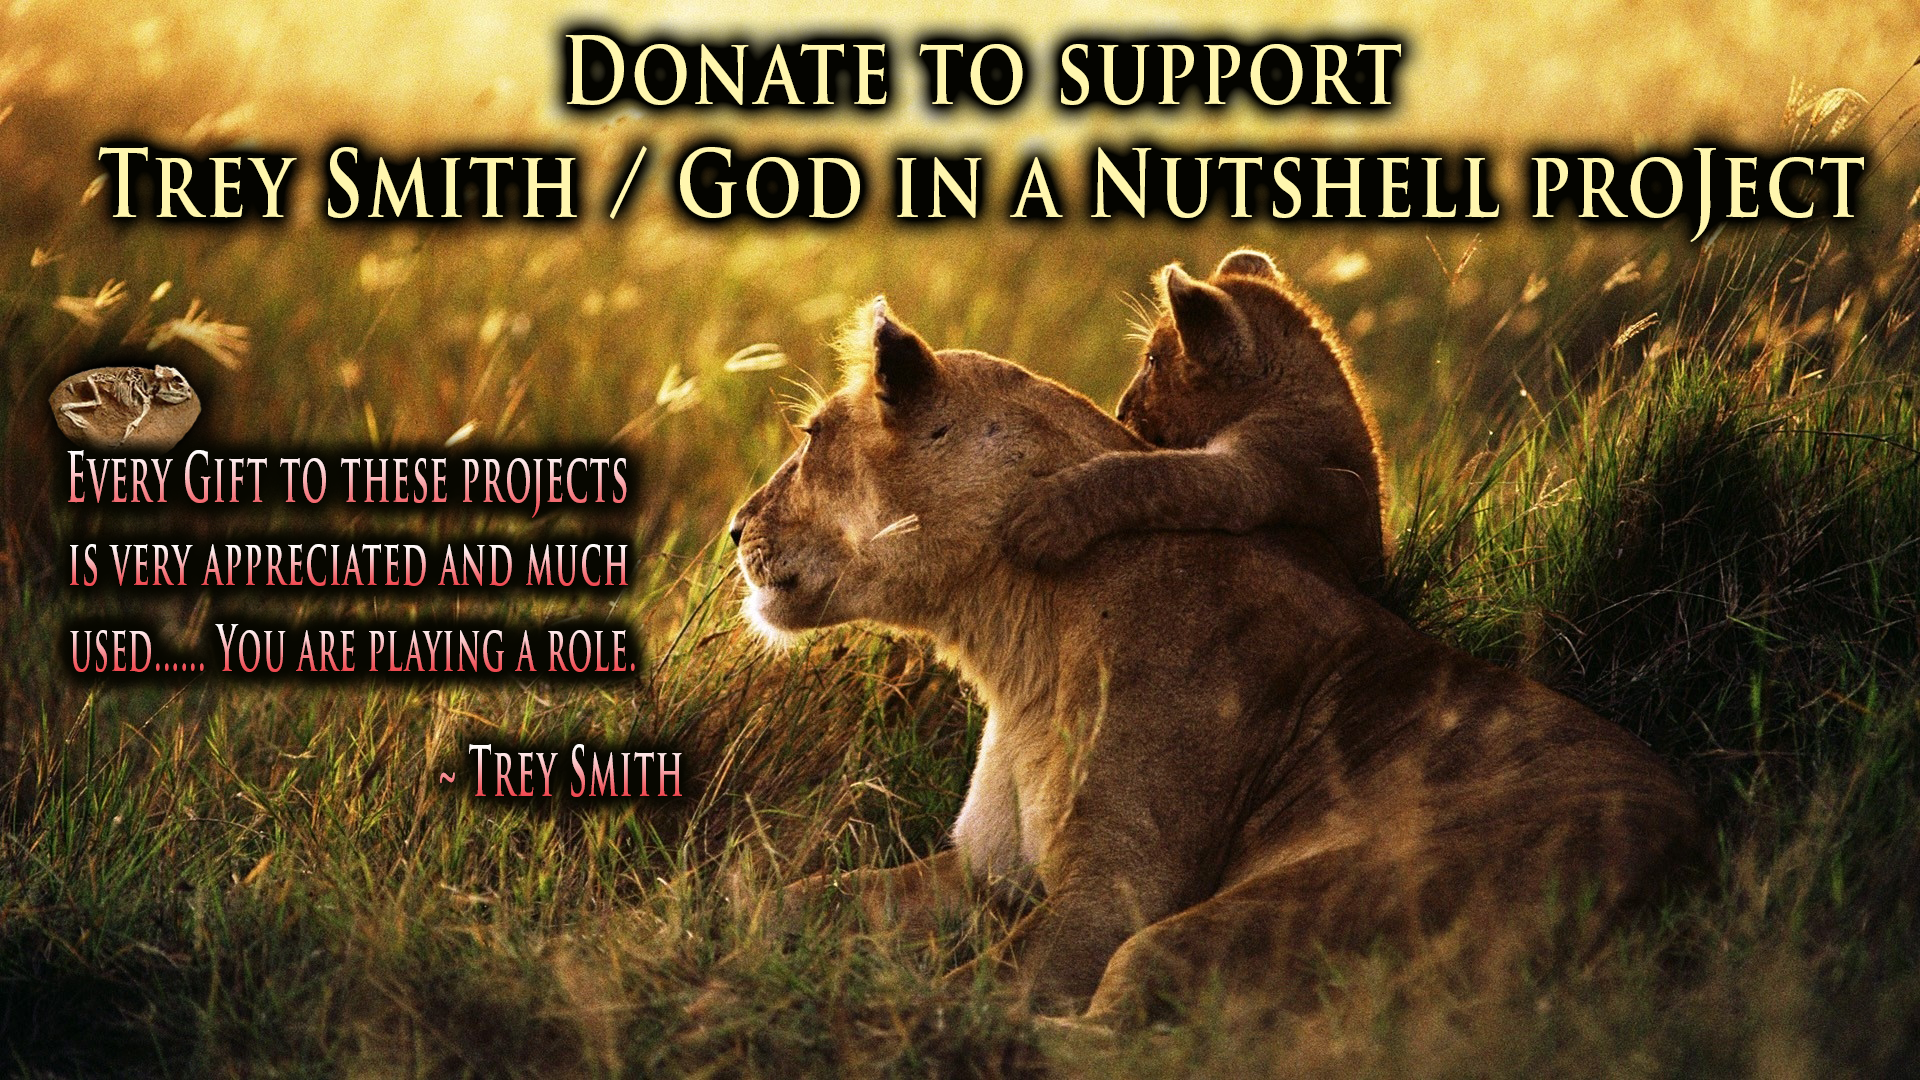 Support God in a Nutshell project